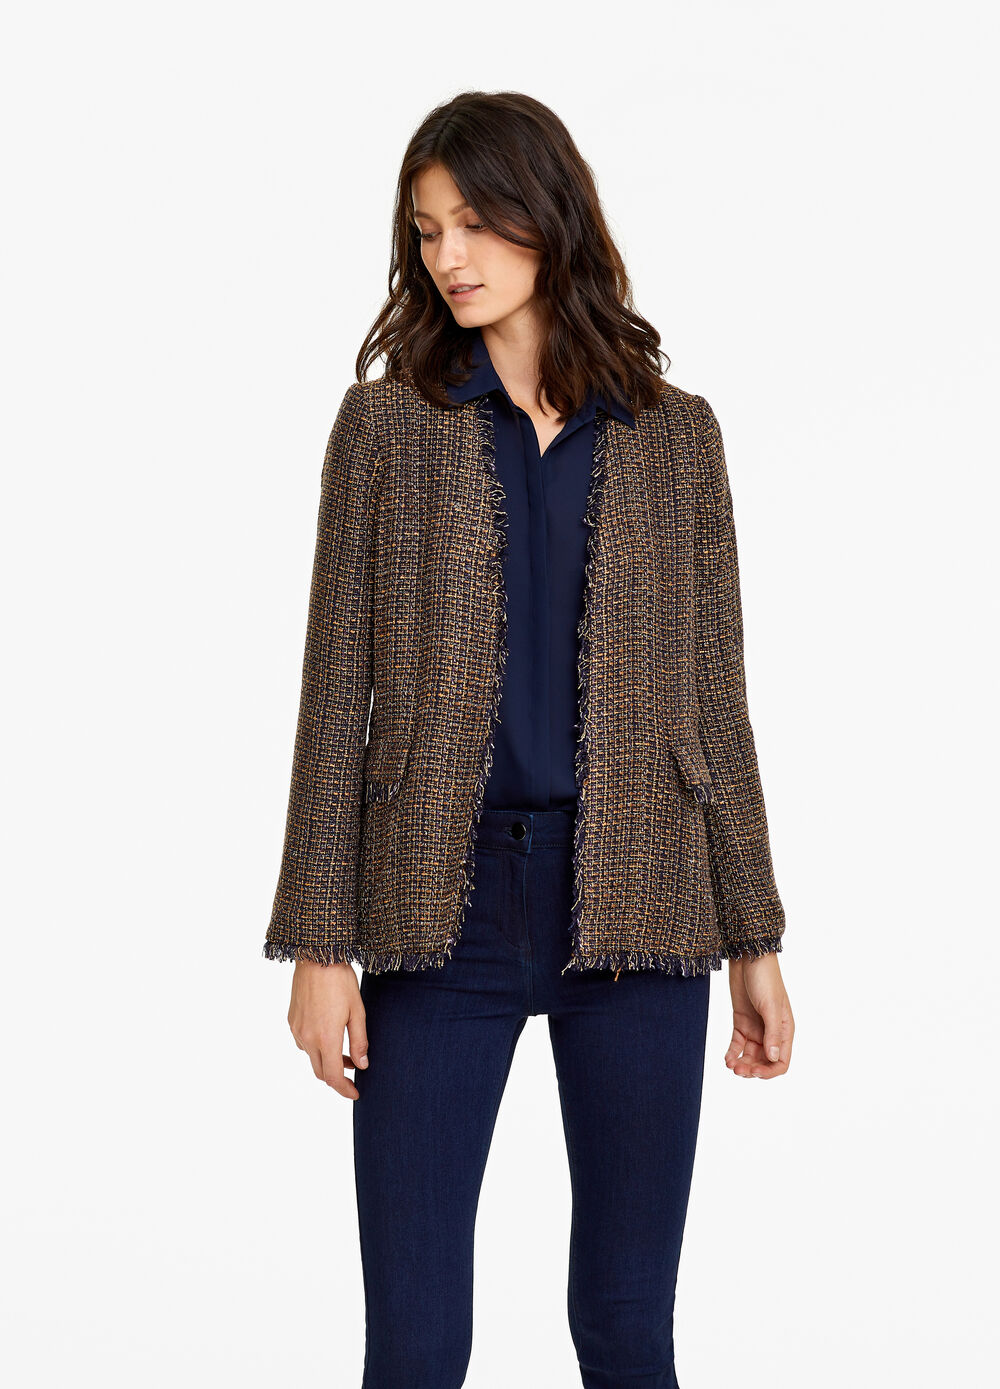 Blazer in tweed jacquard and pockets